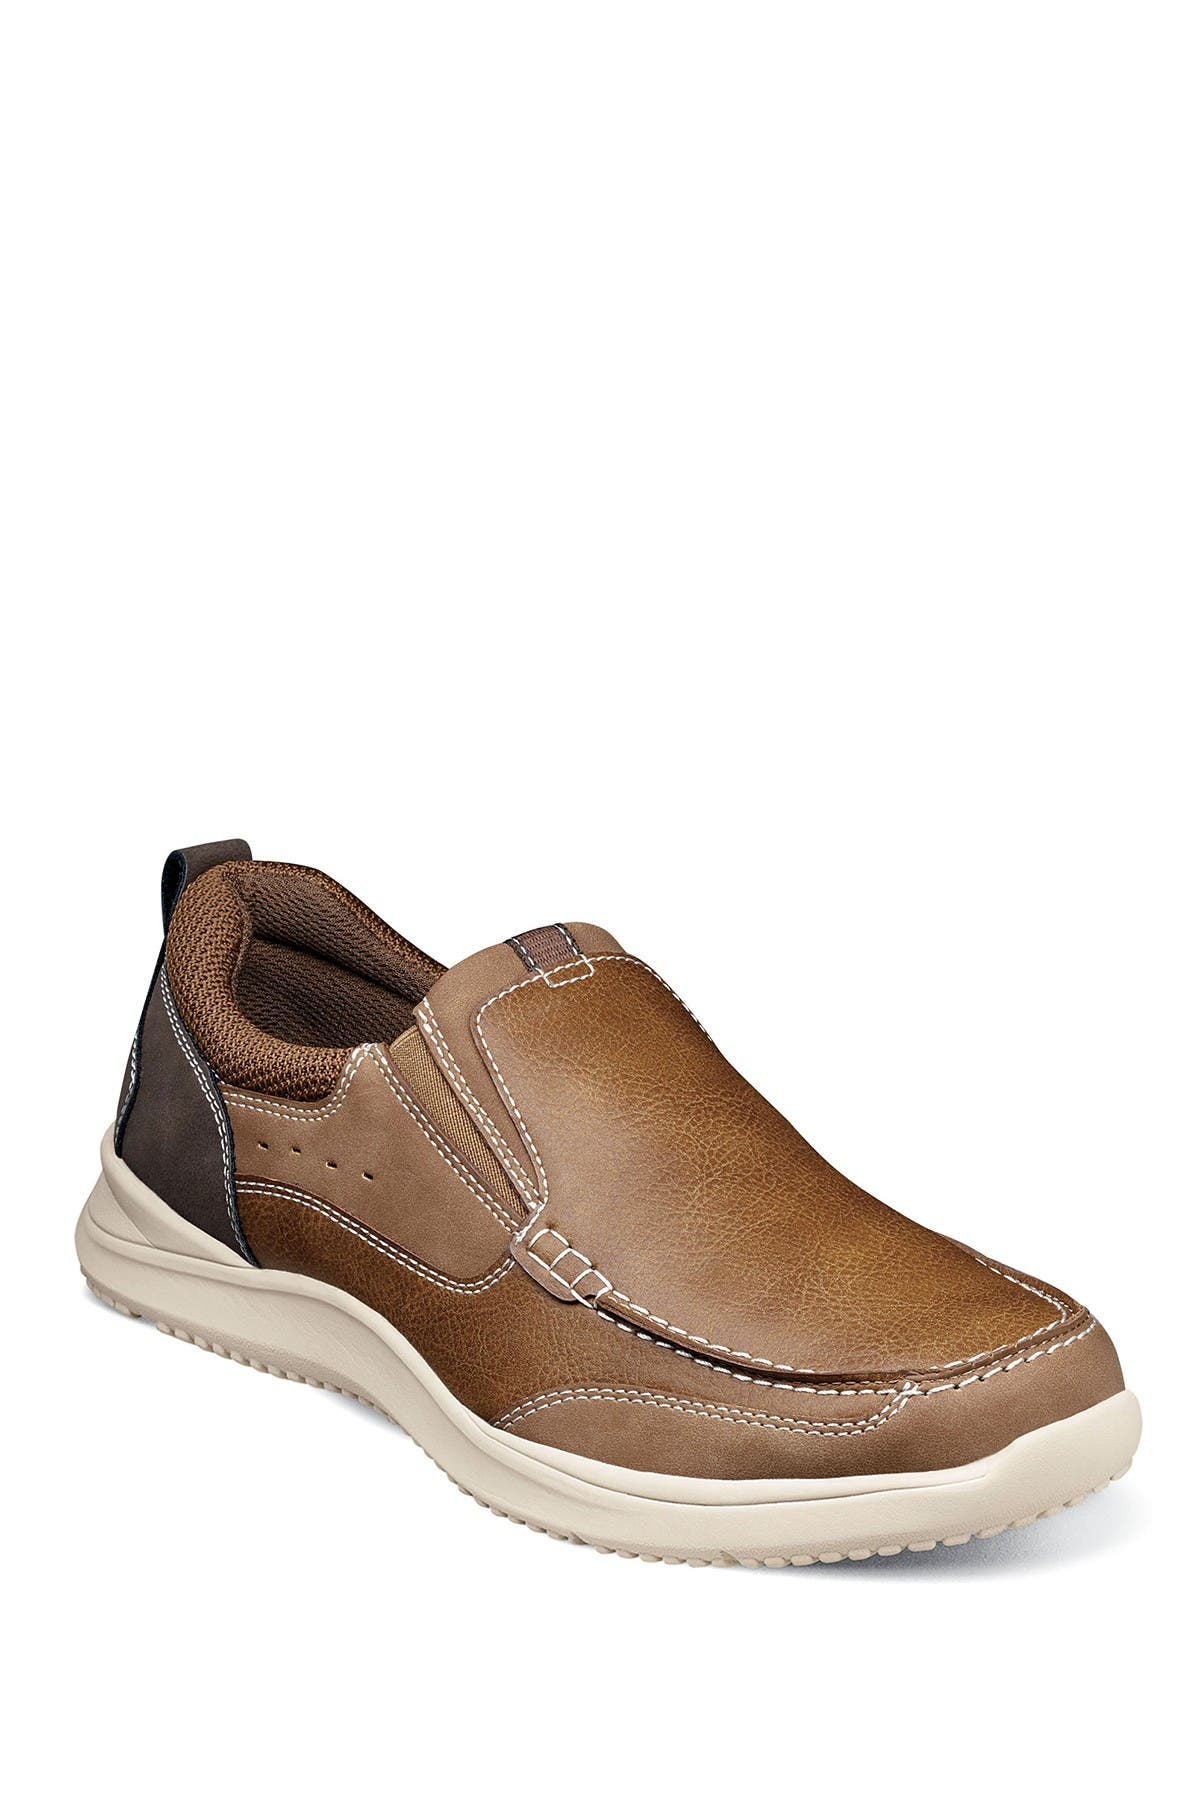 Image of NUNN BUSH Conway Moc Toe Slip-On Sneaker